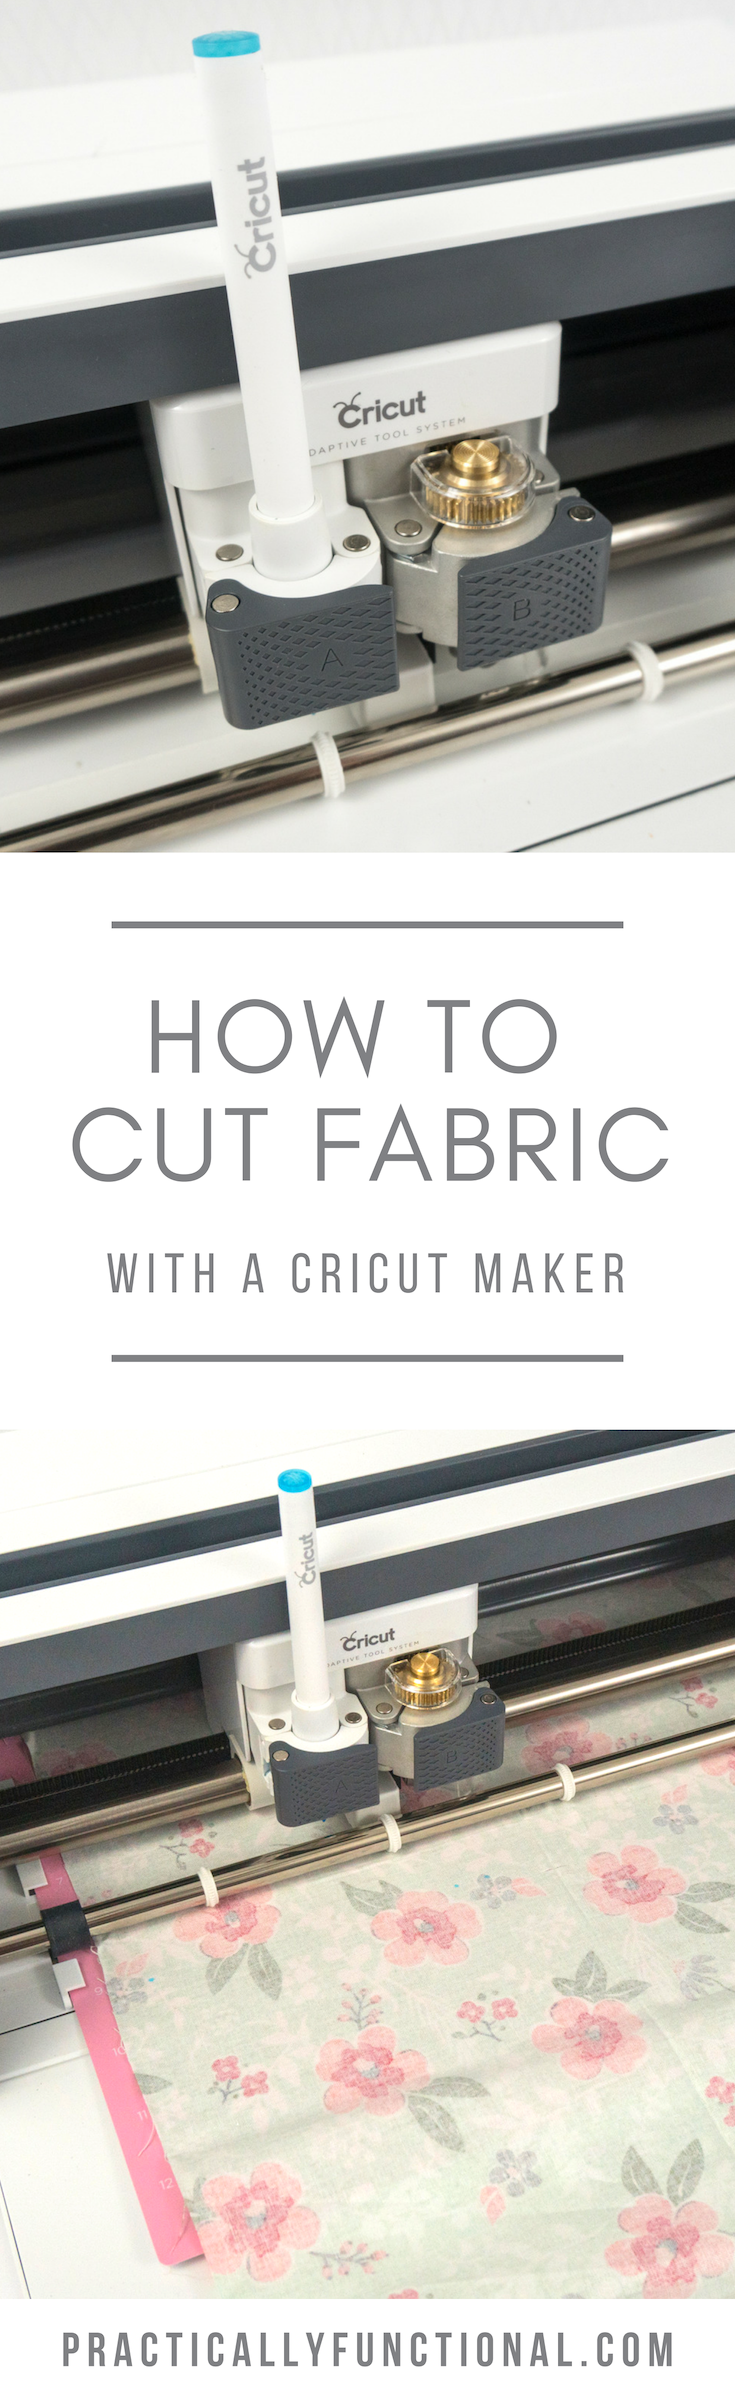 Learn how to cut fabric with a Cricut Maker, plus tips and tricks for getting the best results from your machine and your fabric! #CricutMade #CricutMaker